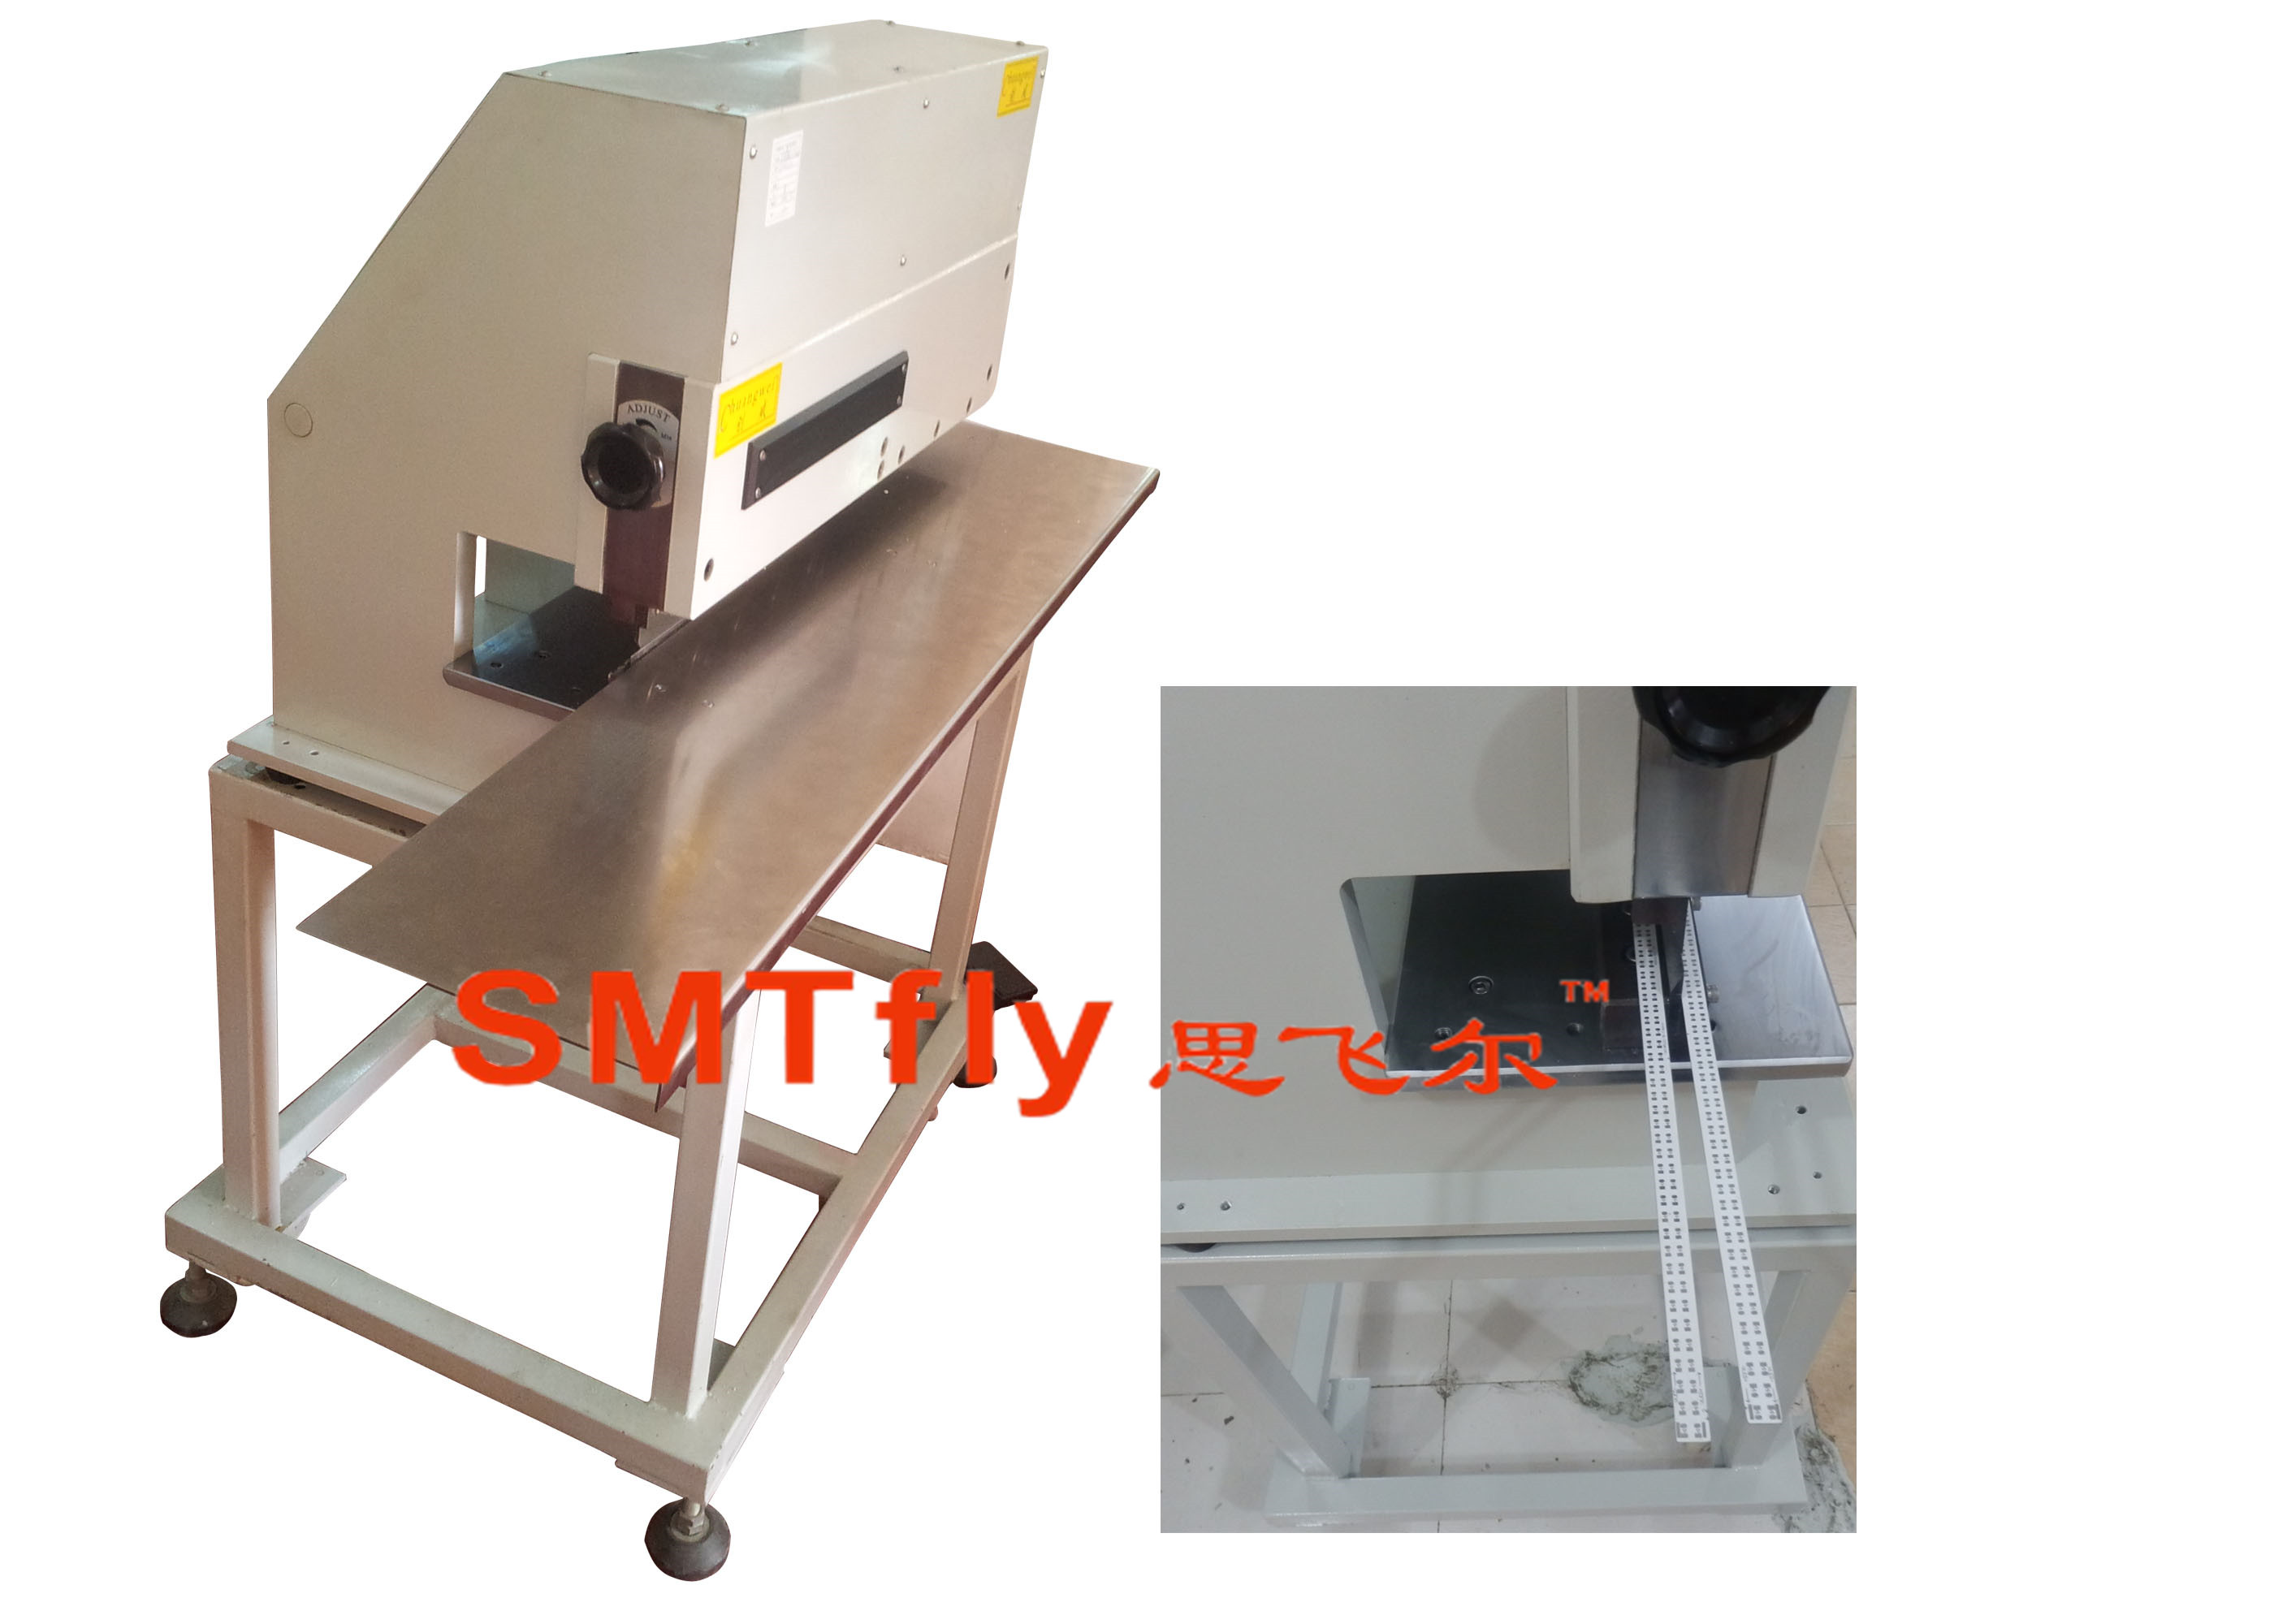 Circuit Cutting Machine,SMTfly-3